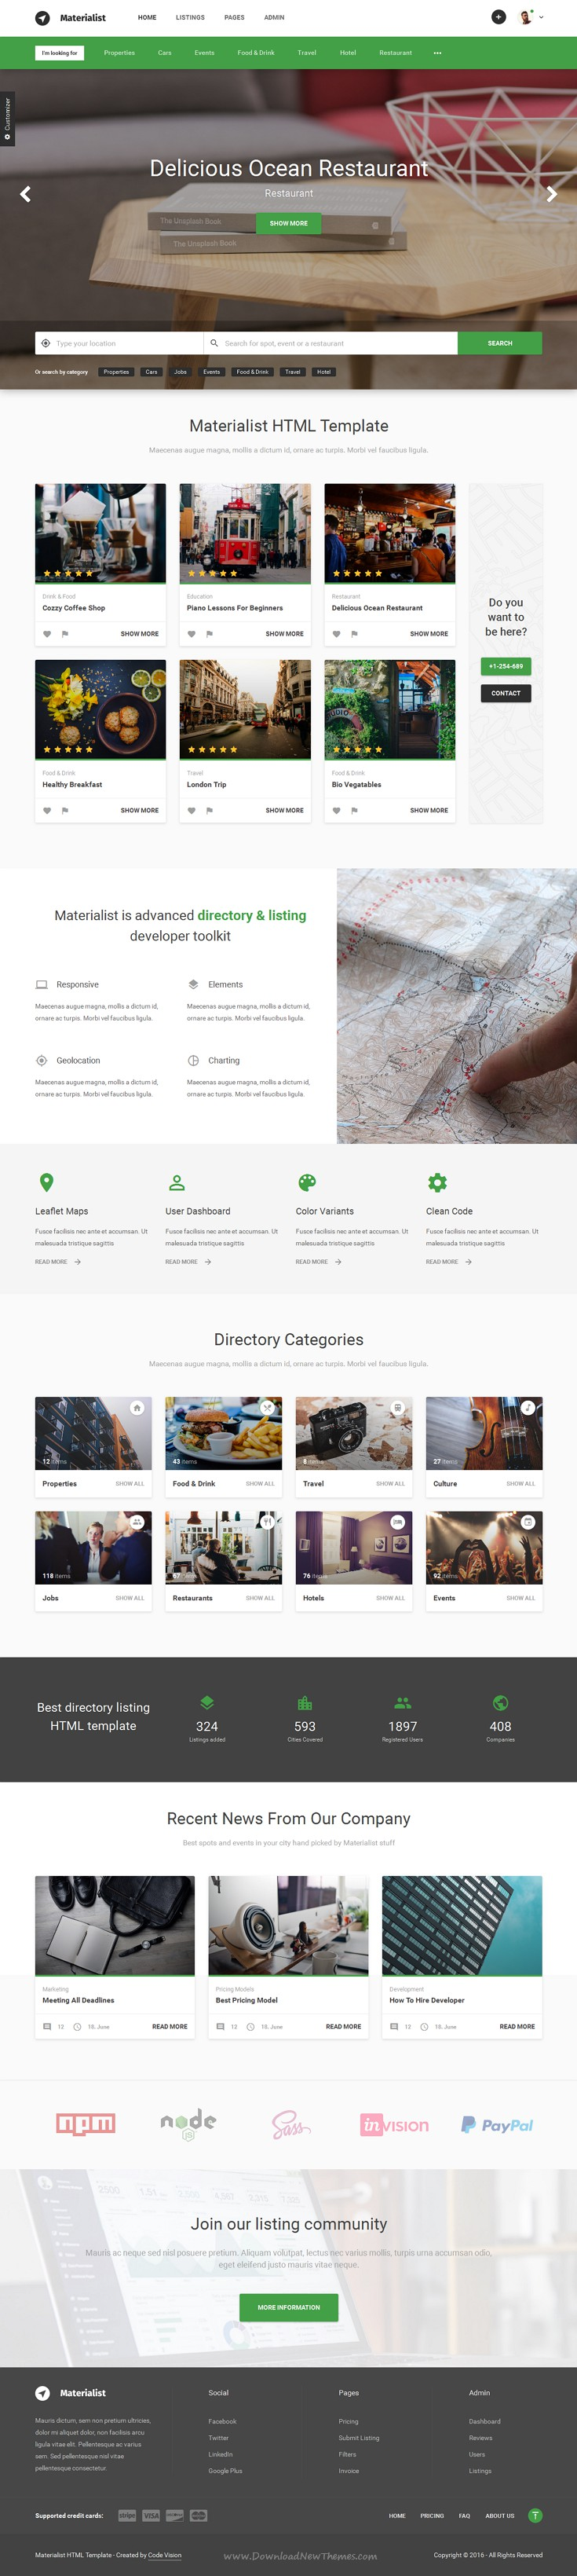 materialist is modern directory bootstrap html and material design